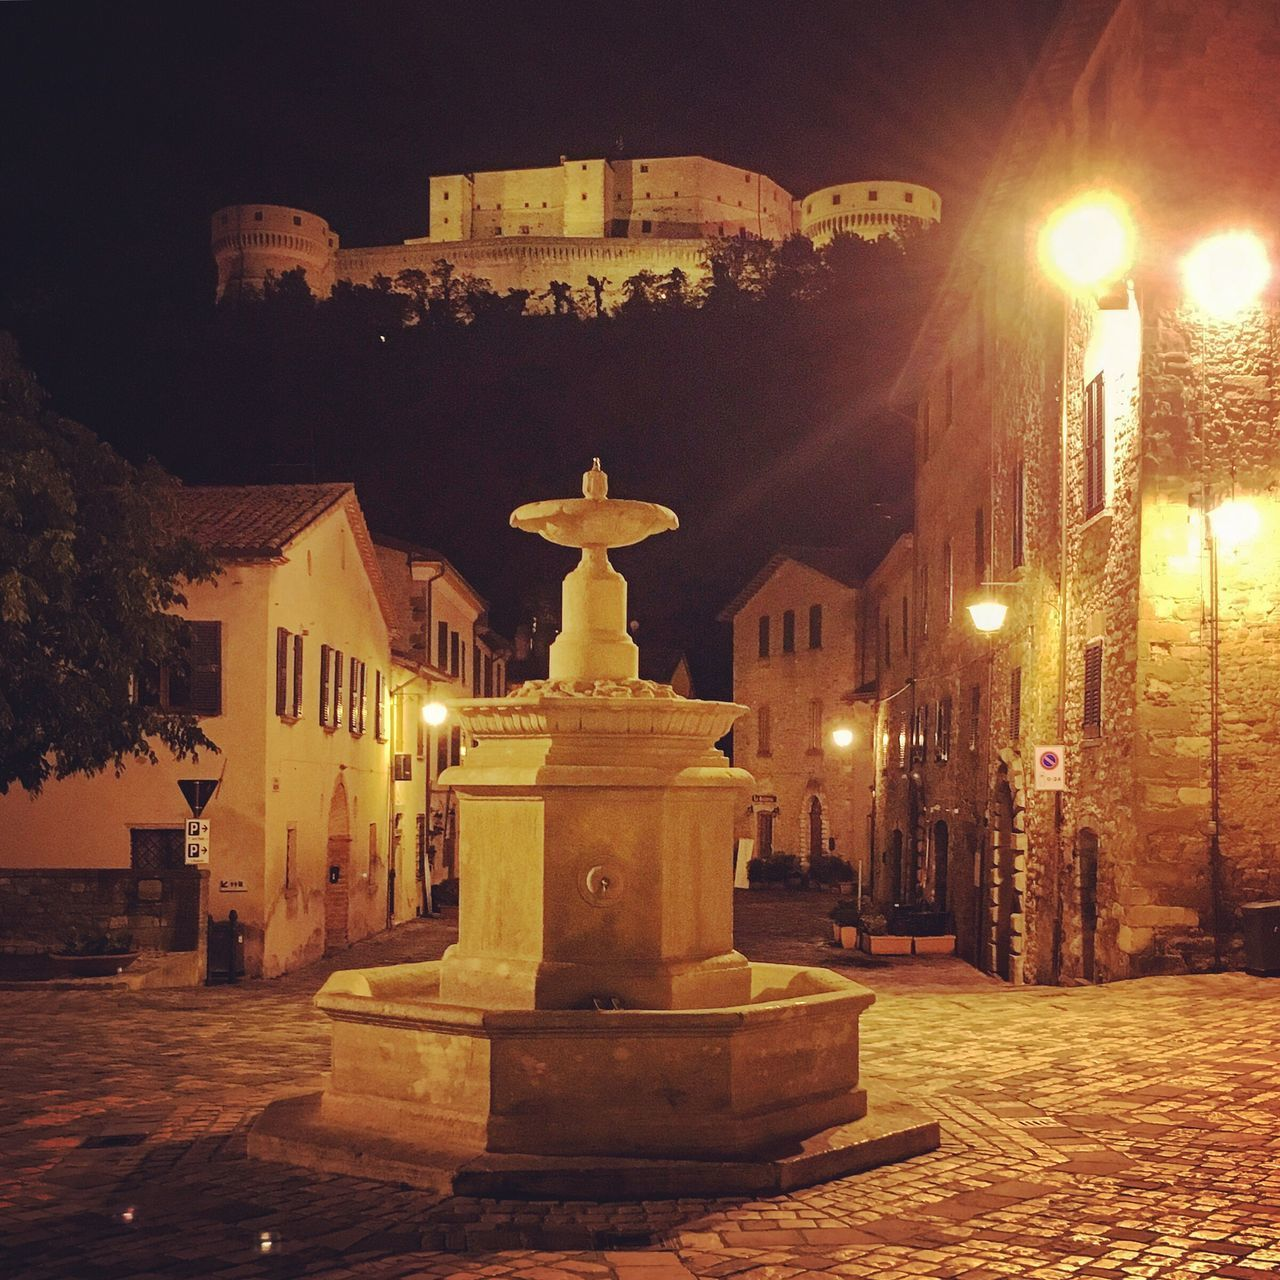 Illuminated Night Statue Architecture Built Structure Building Exterior No People Sculpture Outdoors Montefeltro San Leo